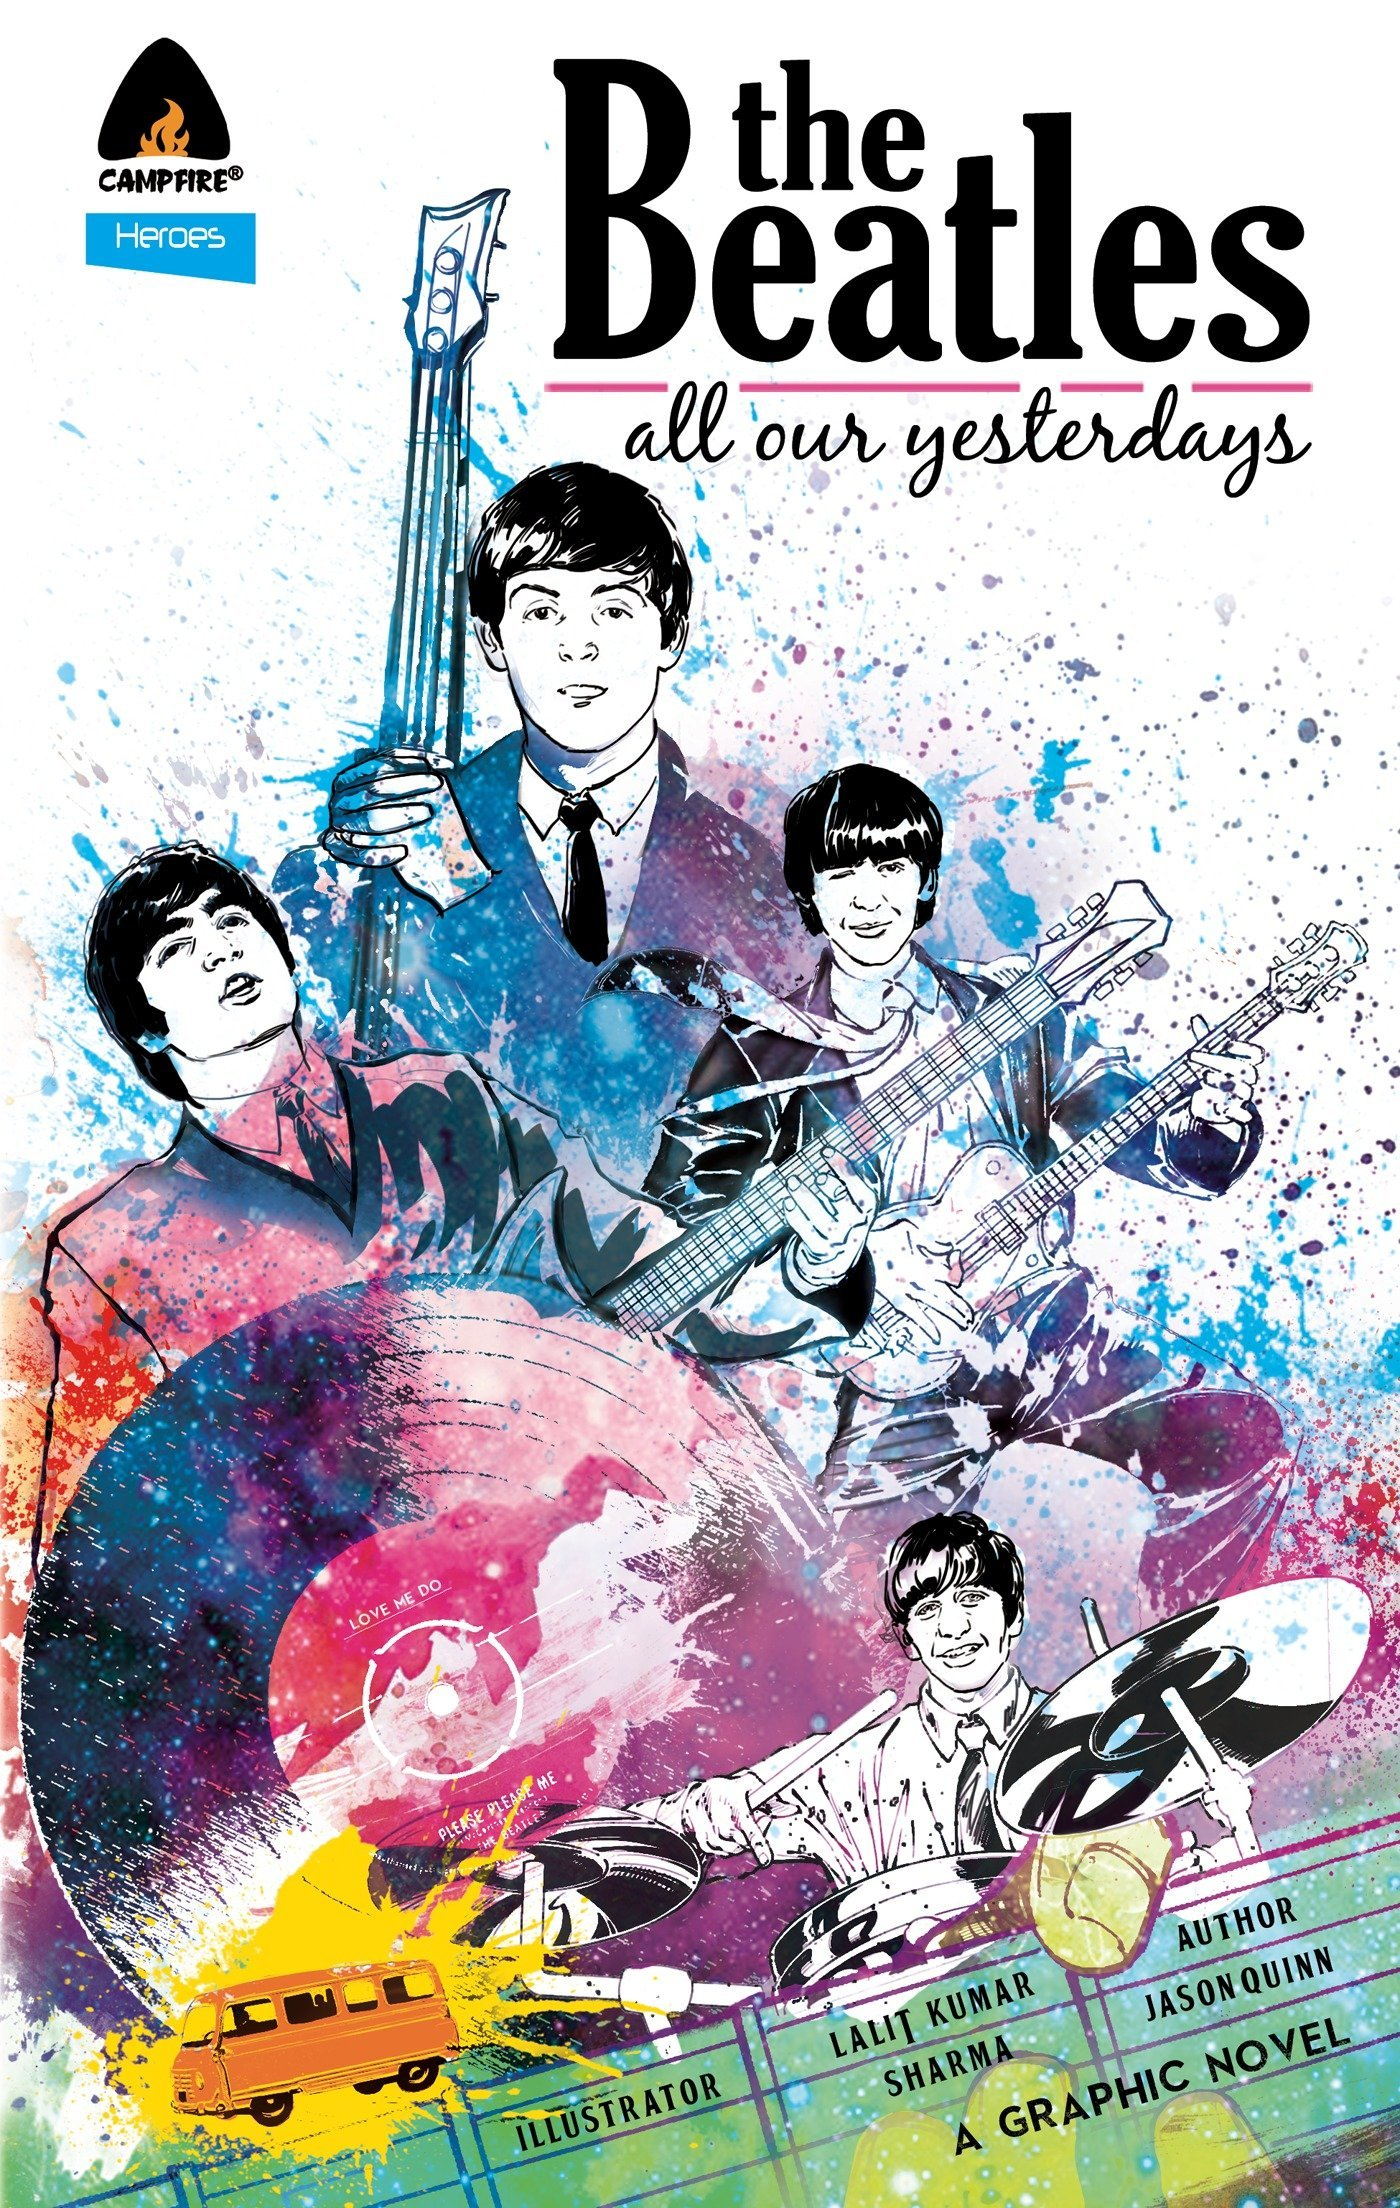 The Beatles: All Our Yesterdays (Campfire Graphic Novels) ebook